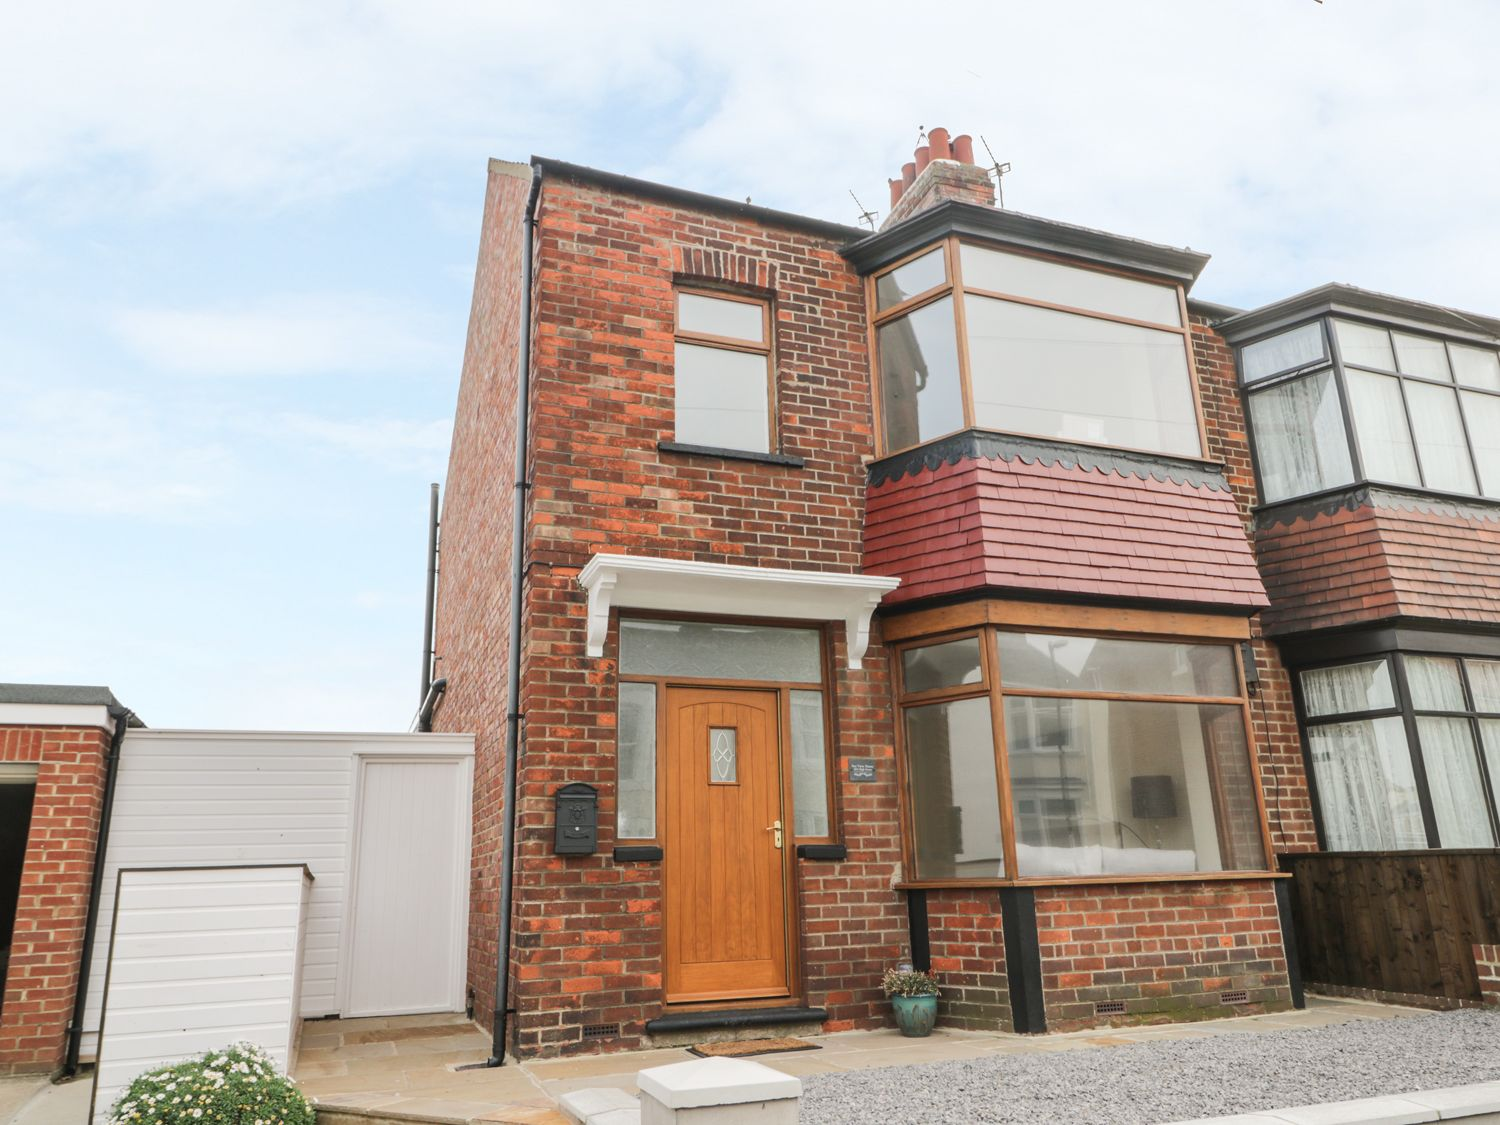 204 Sea View House - Whitby & North Yorkshire - 993008 - photo 1